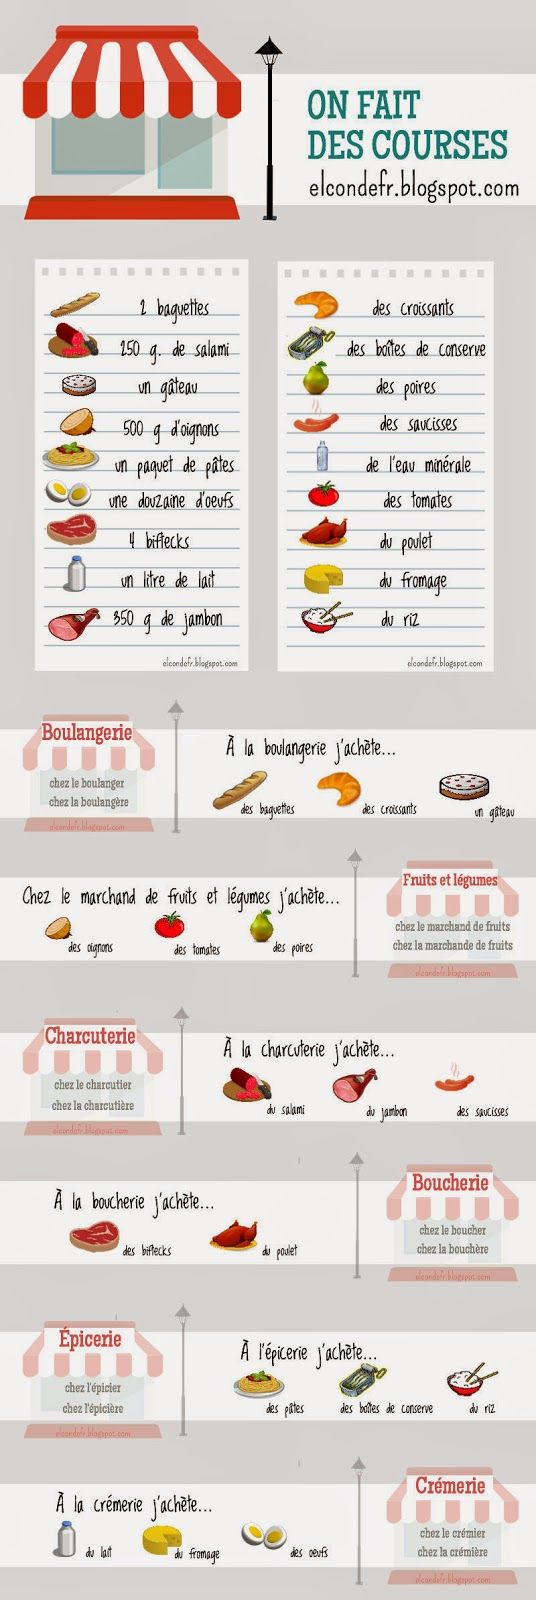 Les différents magasins! On fait des courses #yummyfoods #french #yummmm